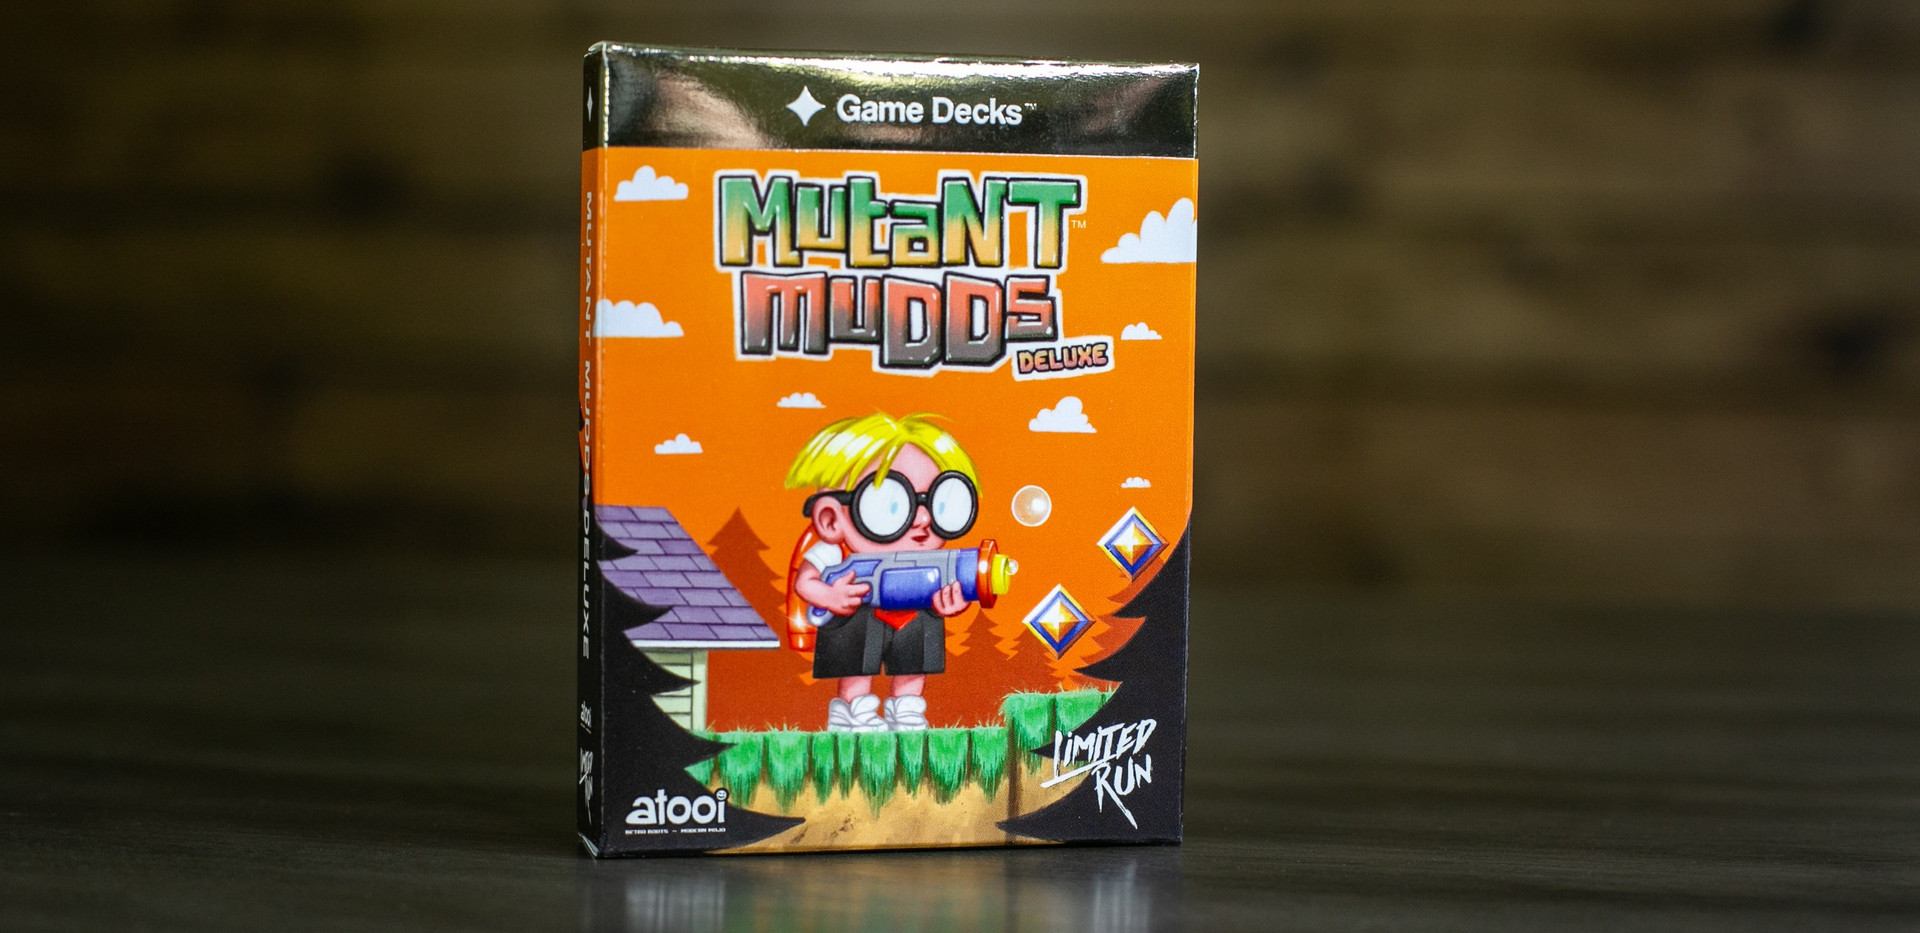 Mutant Mudds Deluxe Gold Box Cover